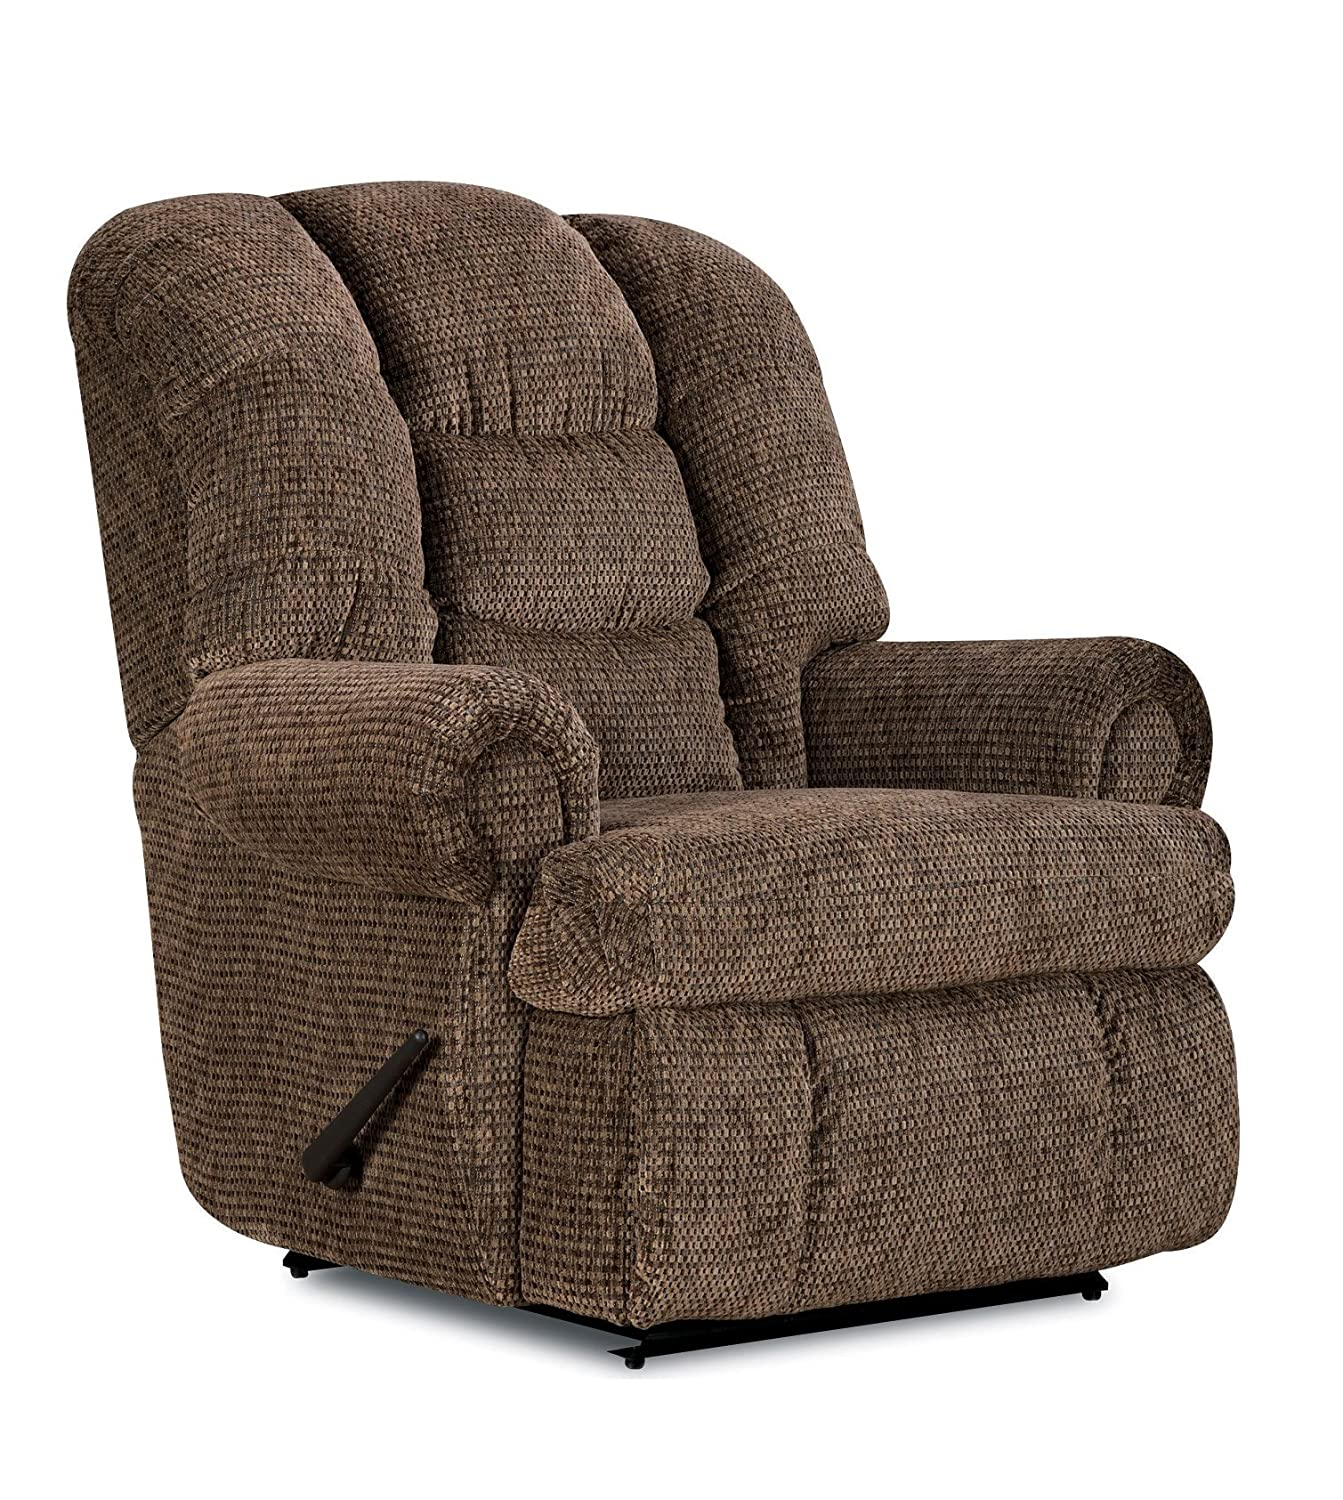 heavy duty lift chair leather baby shower rental what 39s the best recliners for big men up to 500